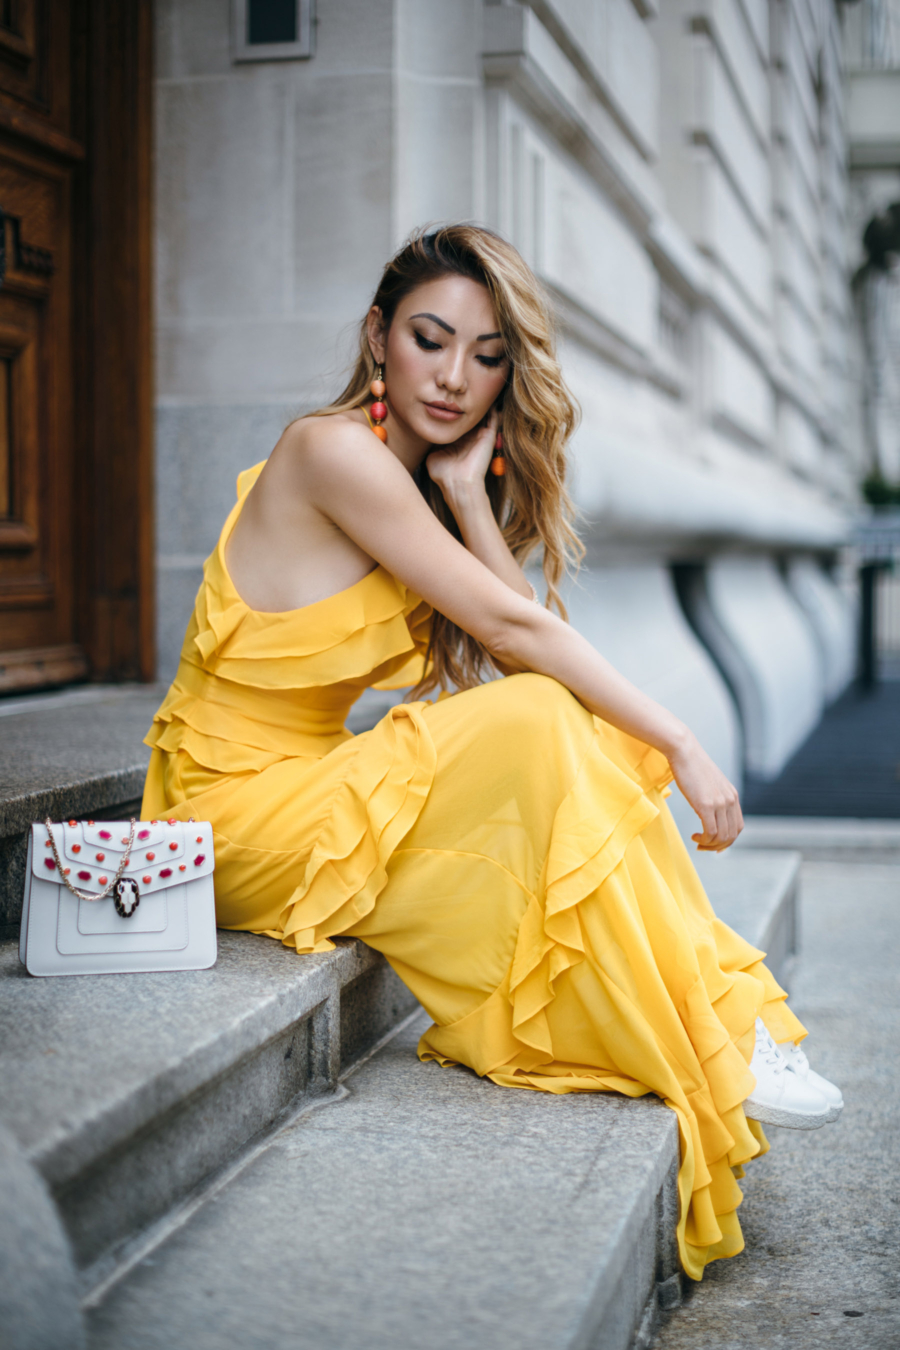 Tier Dress and Sneakers = 8 Pieces To Achieve The Modern Romantic Look // NotJessFashion.com